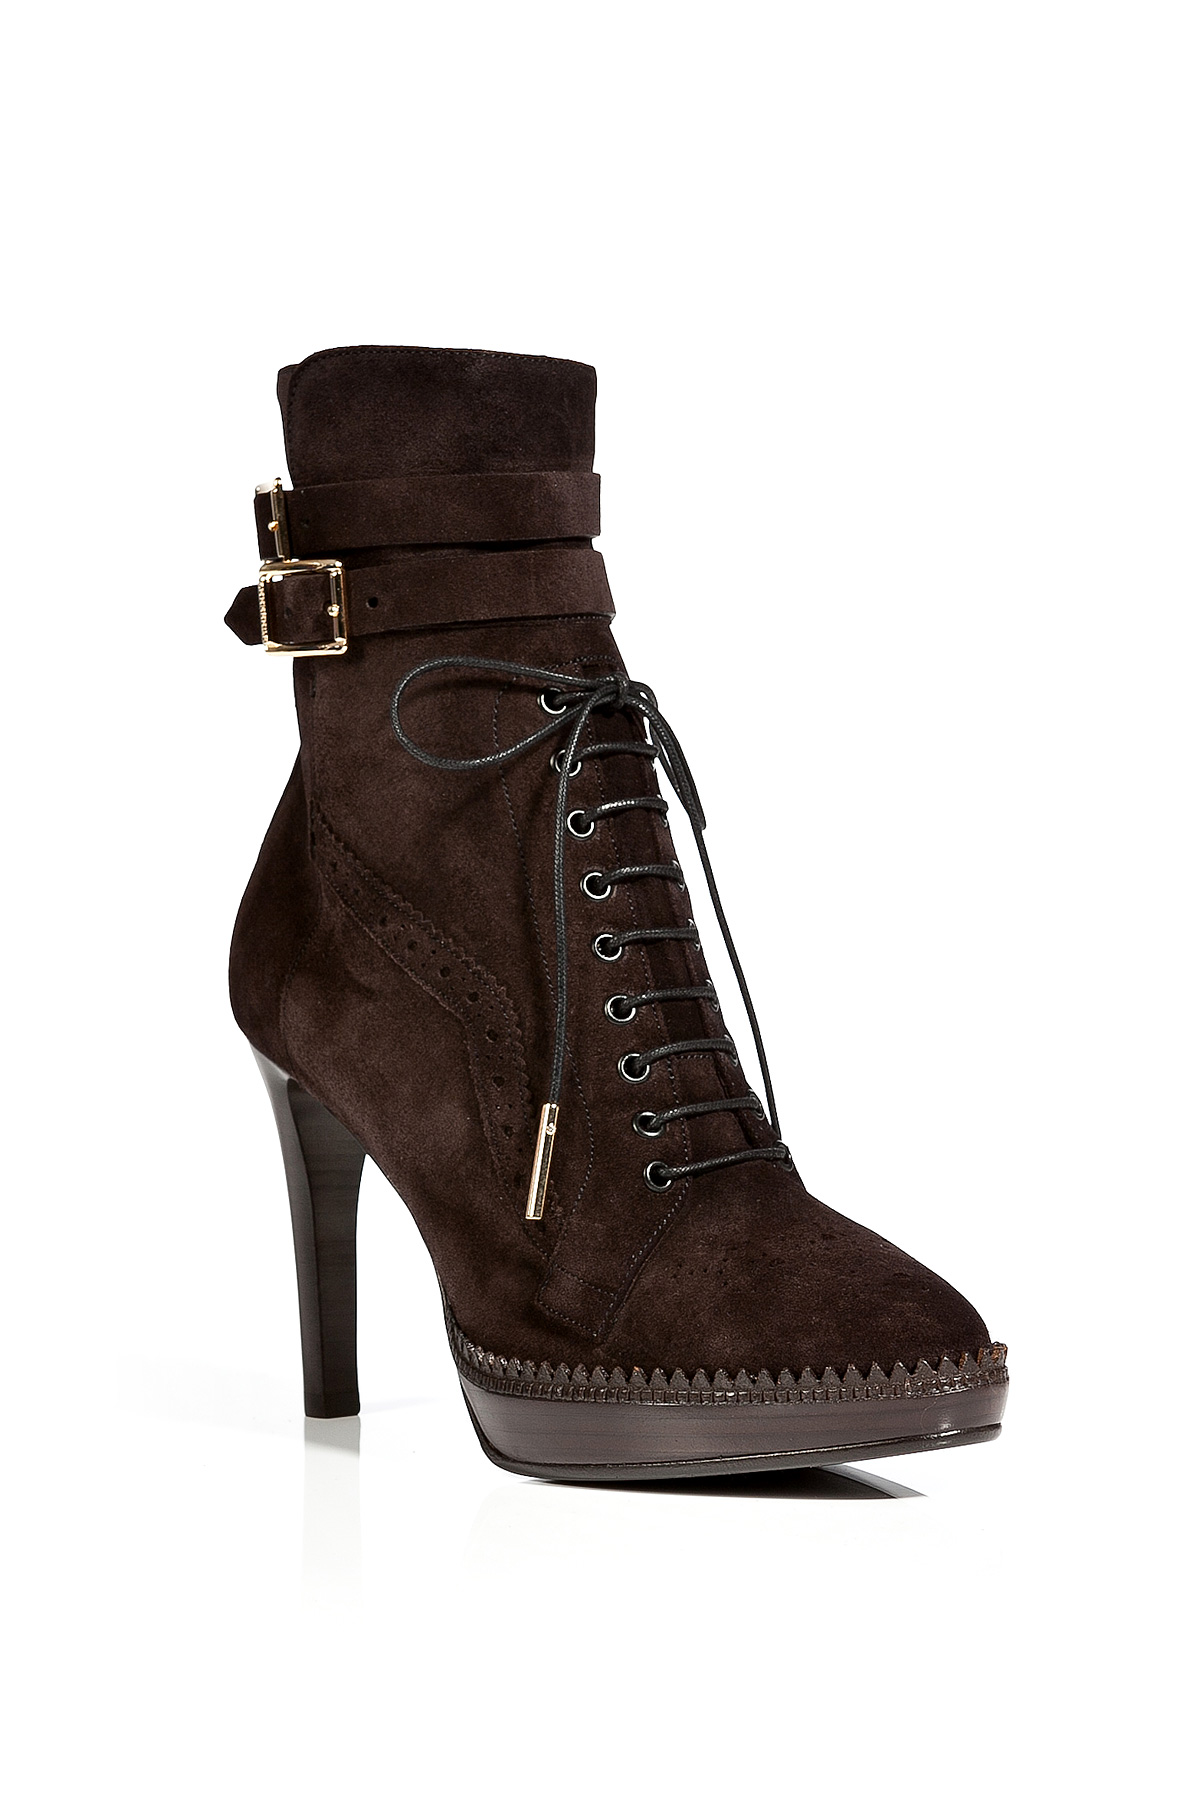 burberry suede manners ankle boots in chocolate in brown